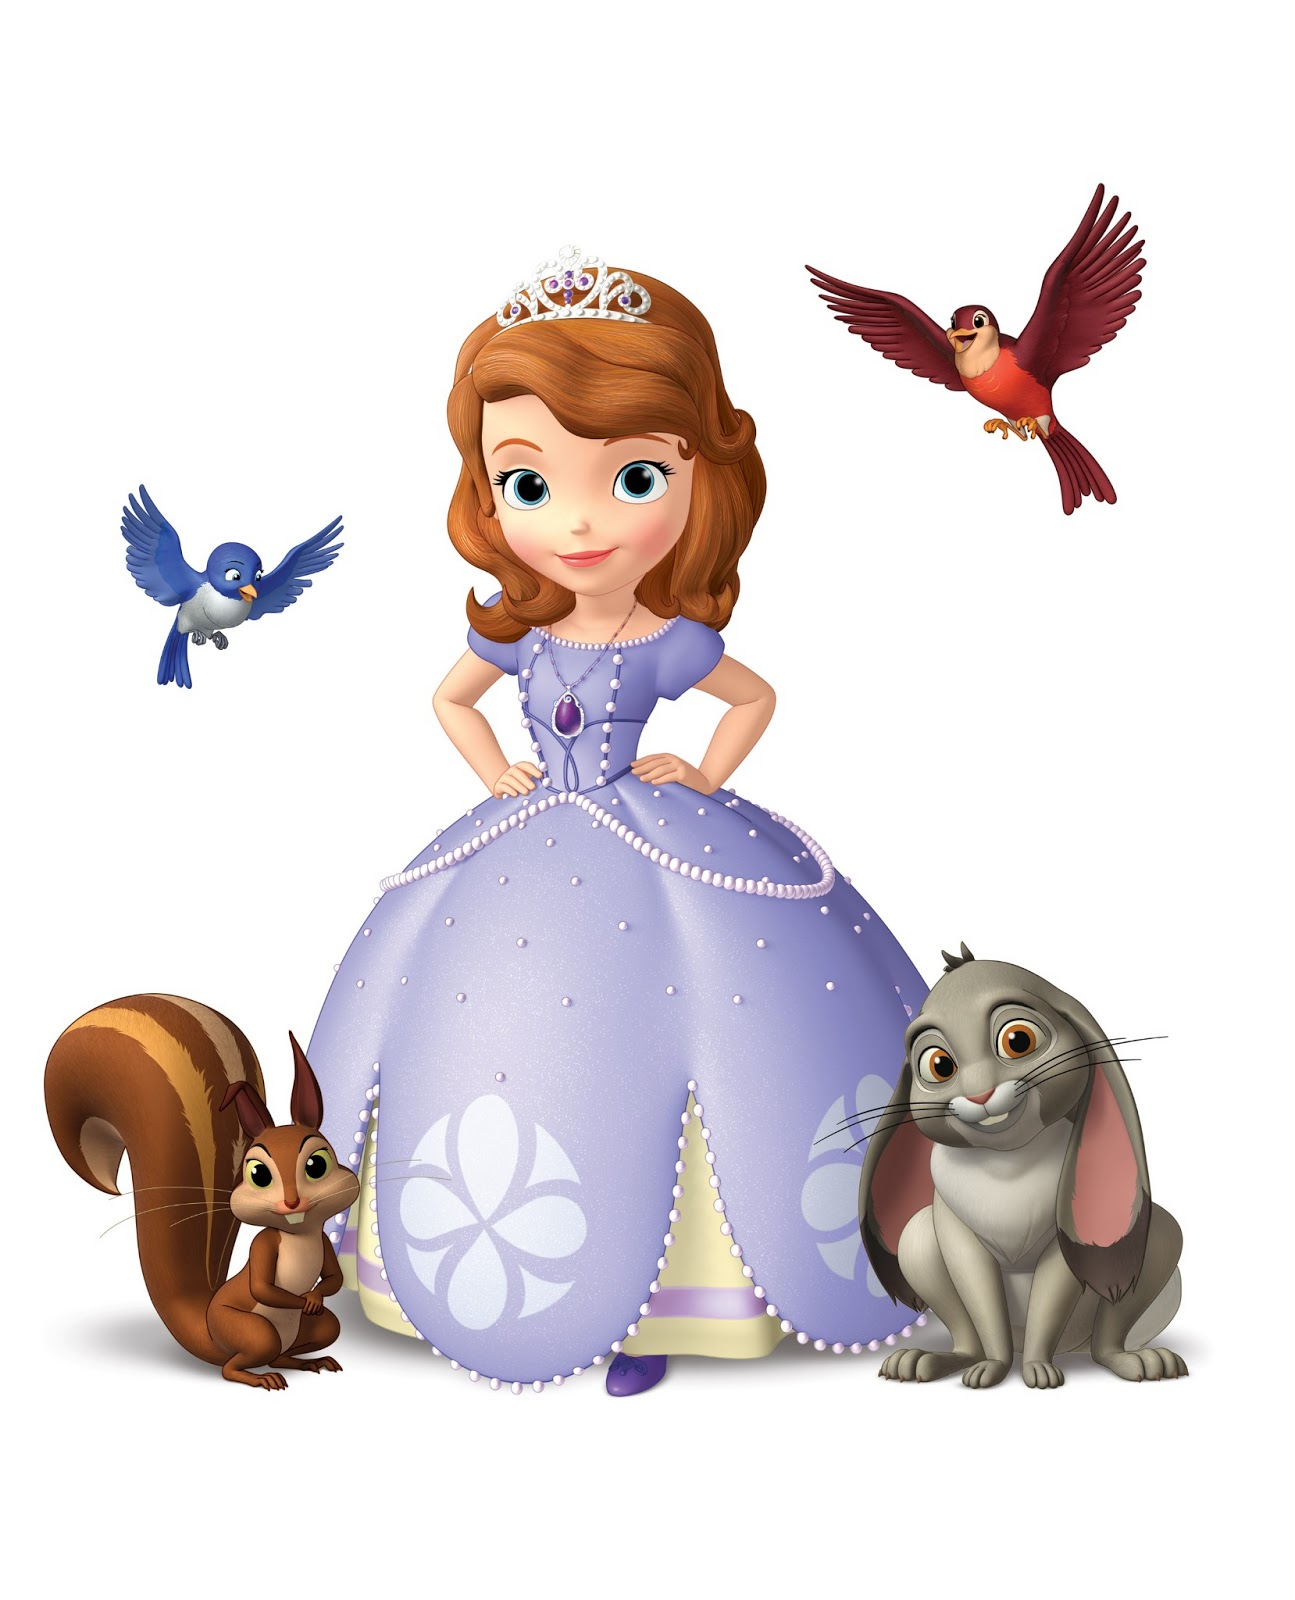 Cynful pleasure 39 s journey to success sofia the first once - Image princesse sofia ...